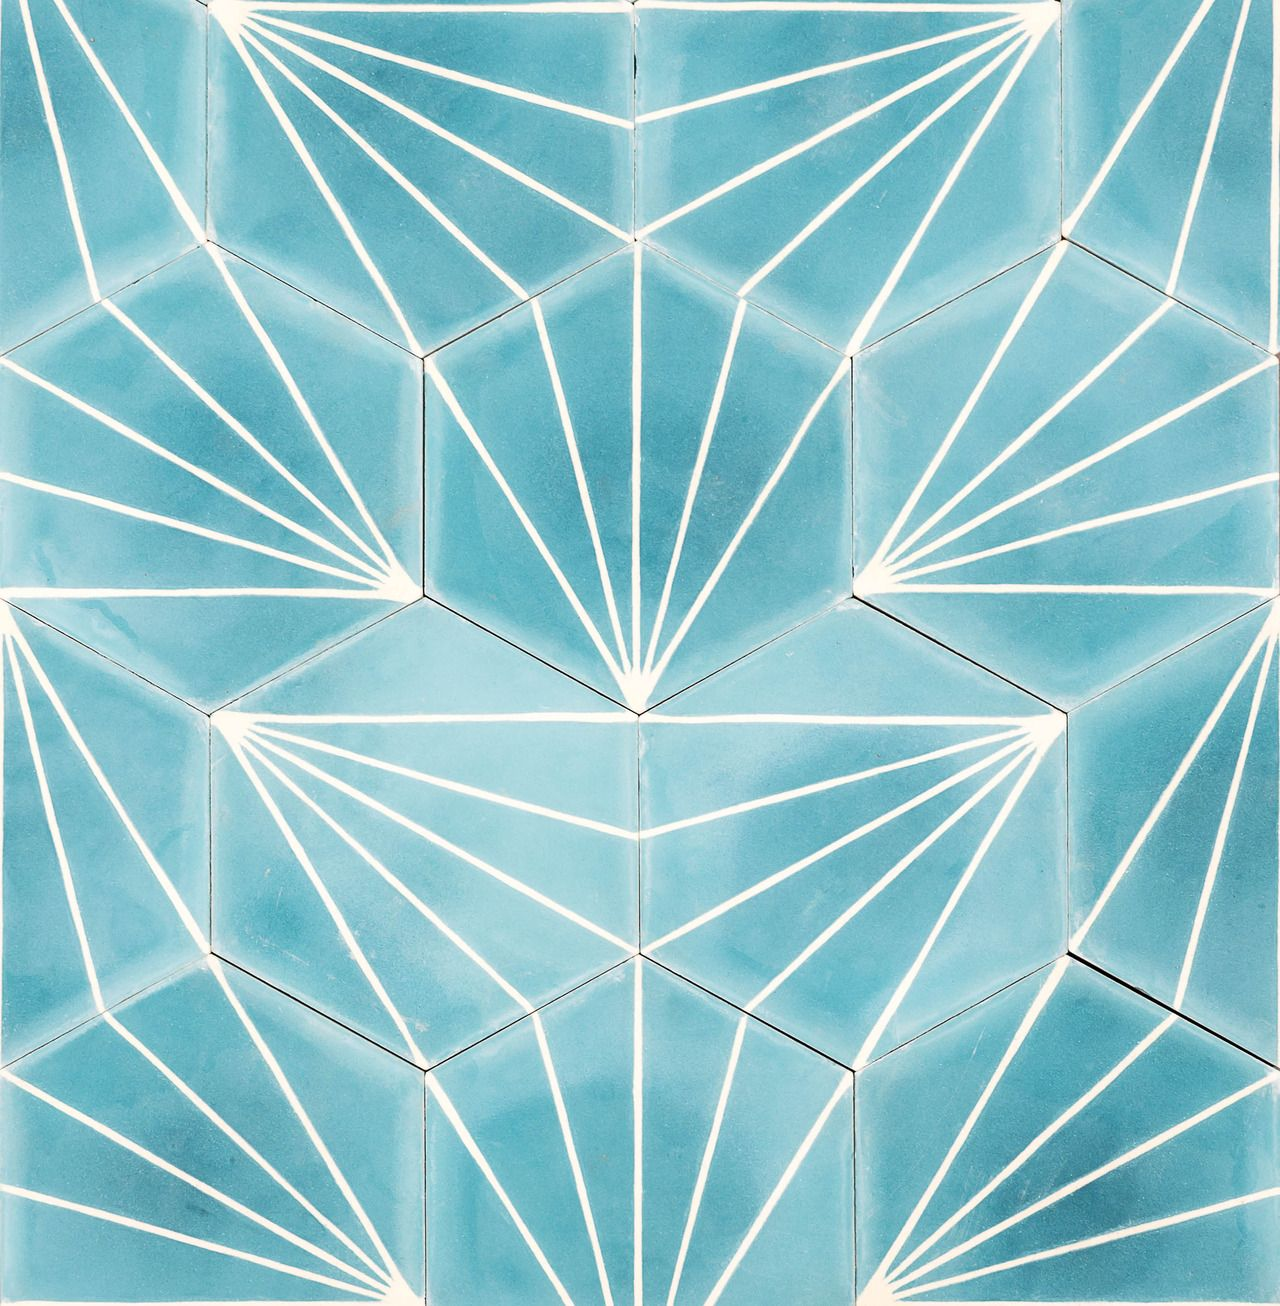 Azure Dandelion Tile Marrakech Design Geometric Tiles